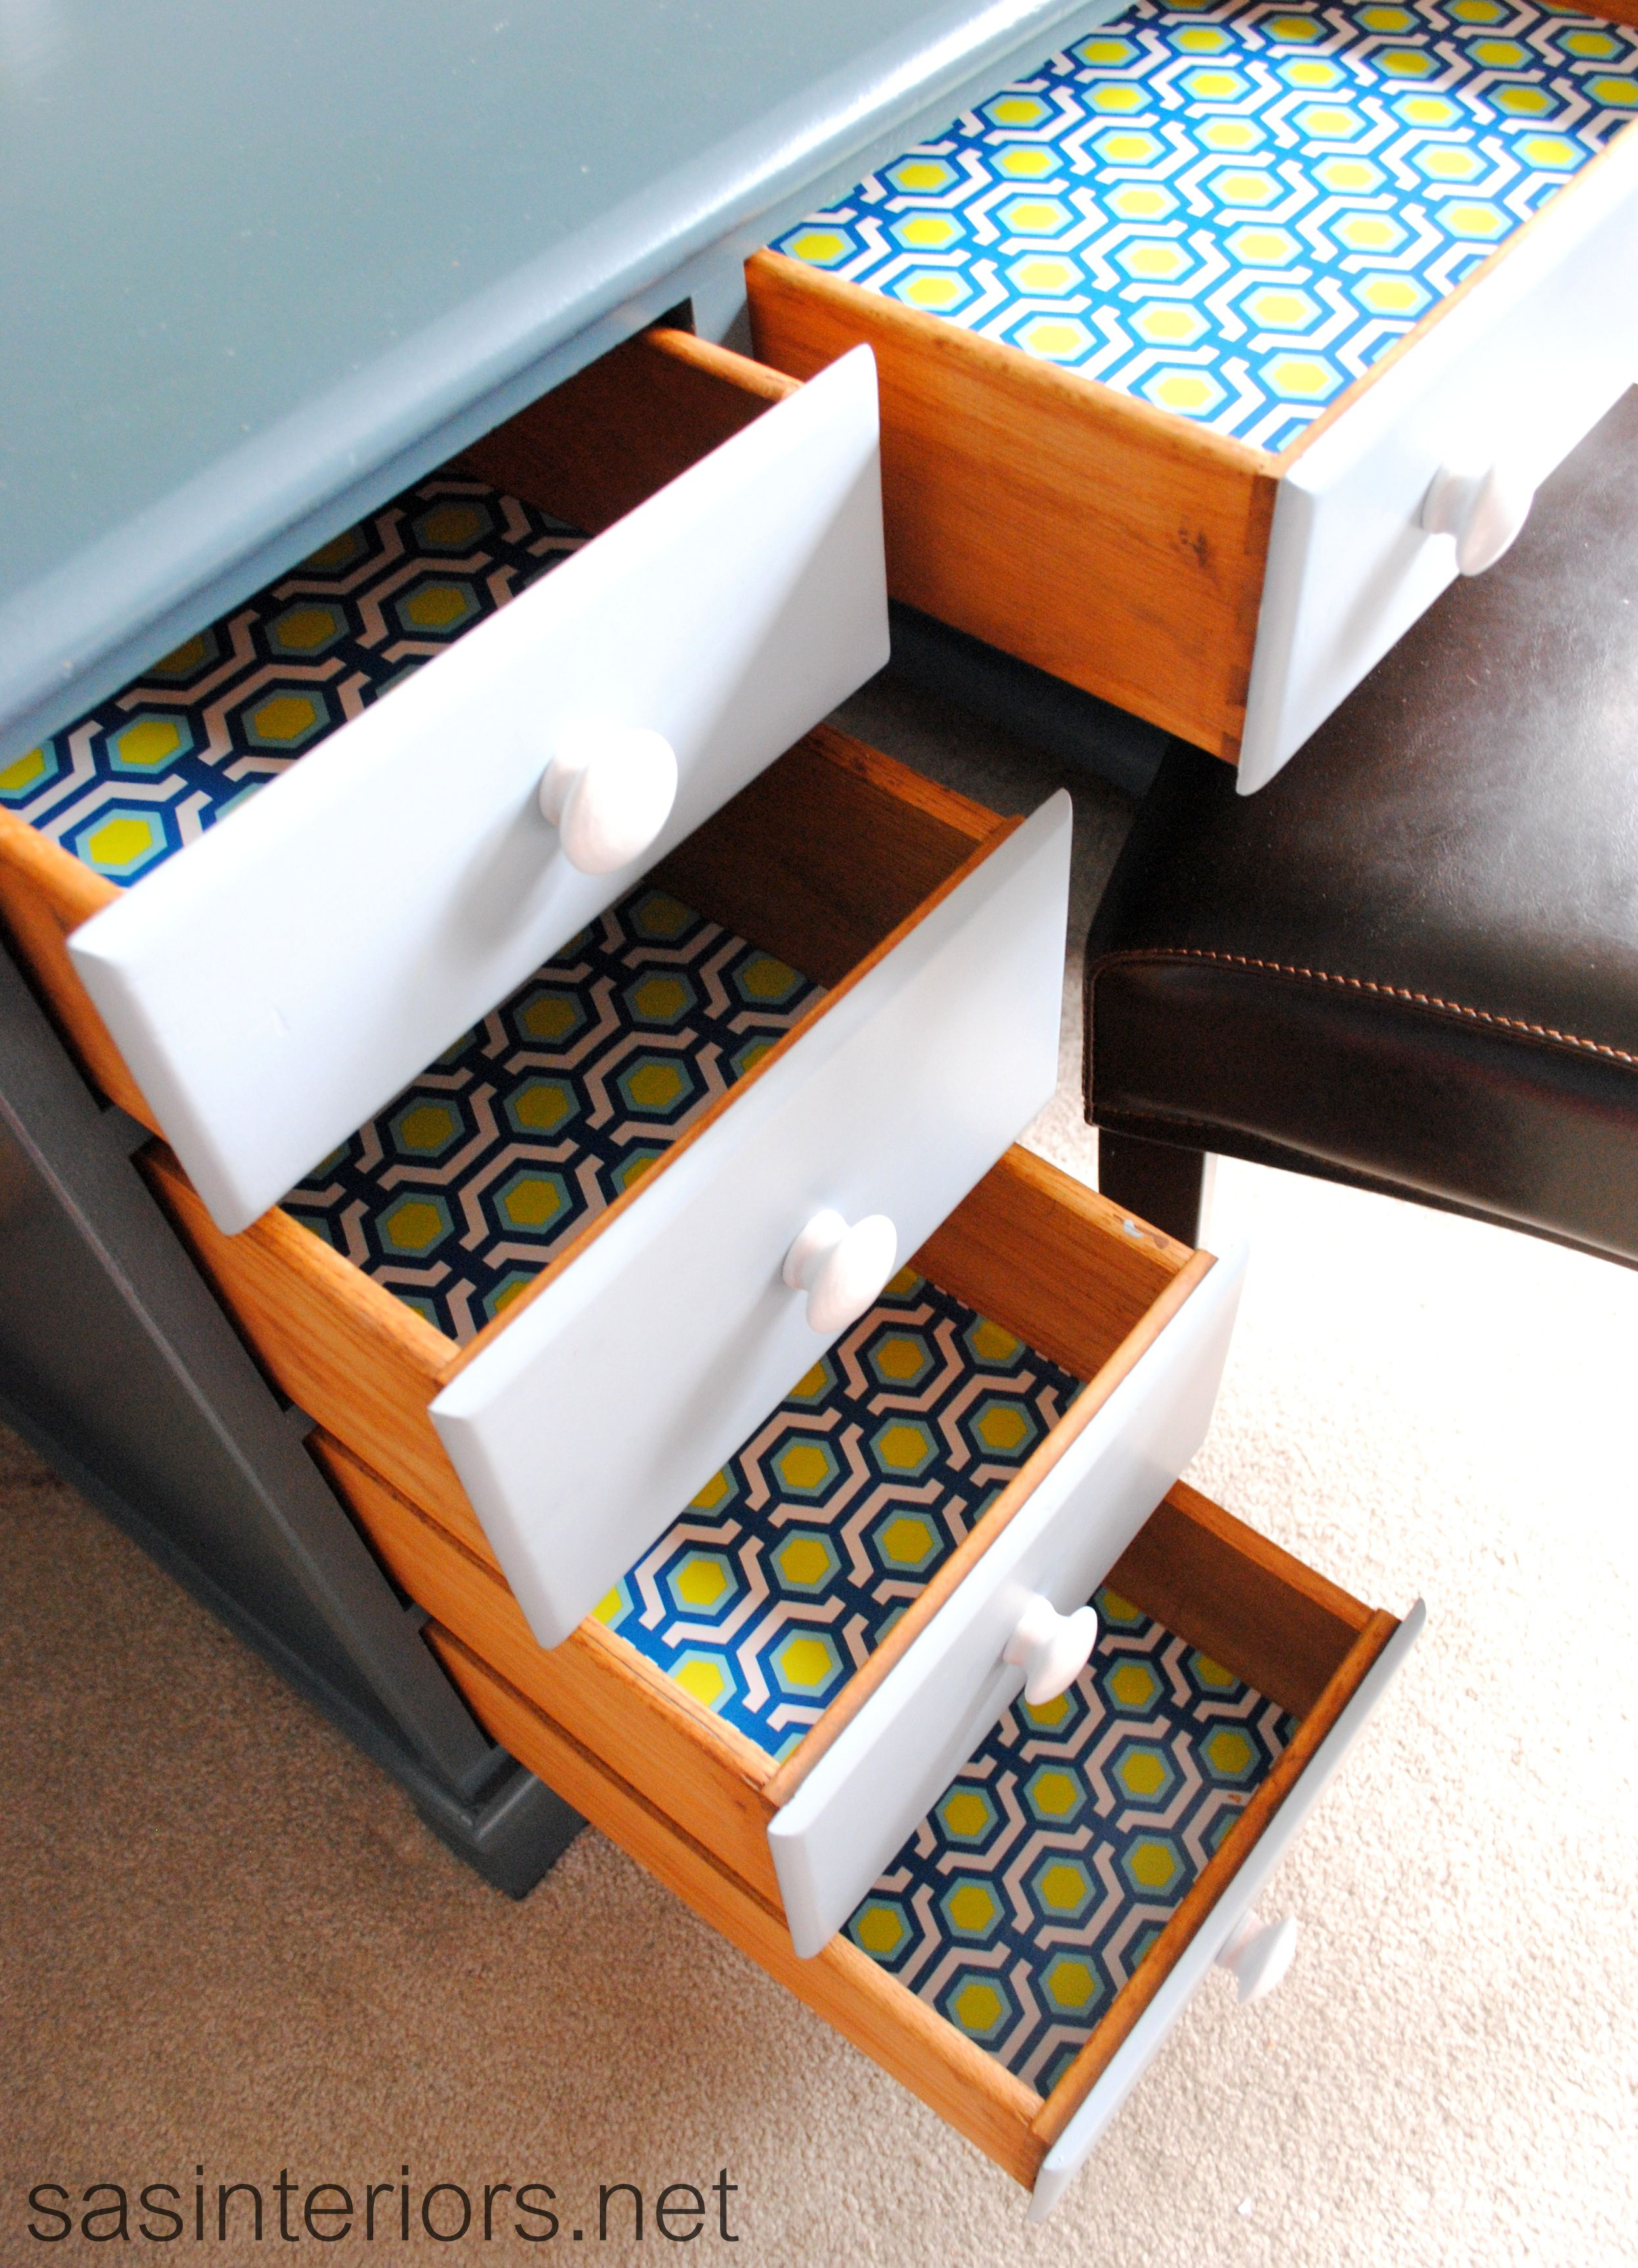 Drawer Liners Cool Bedroom Pinterest Drawers And